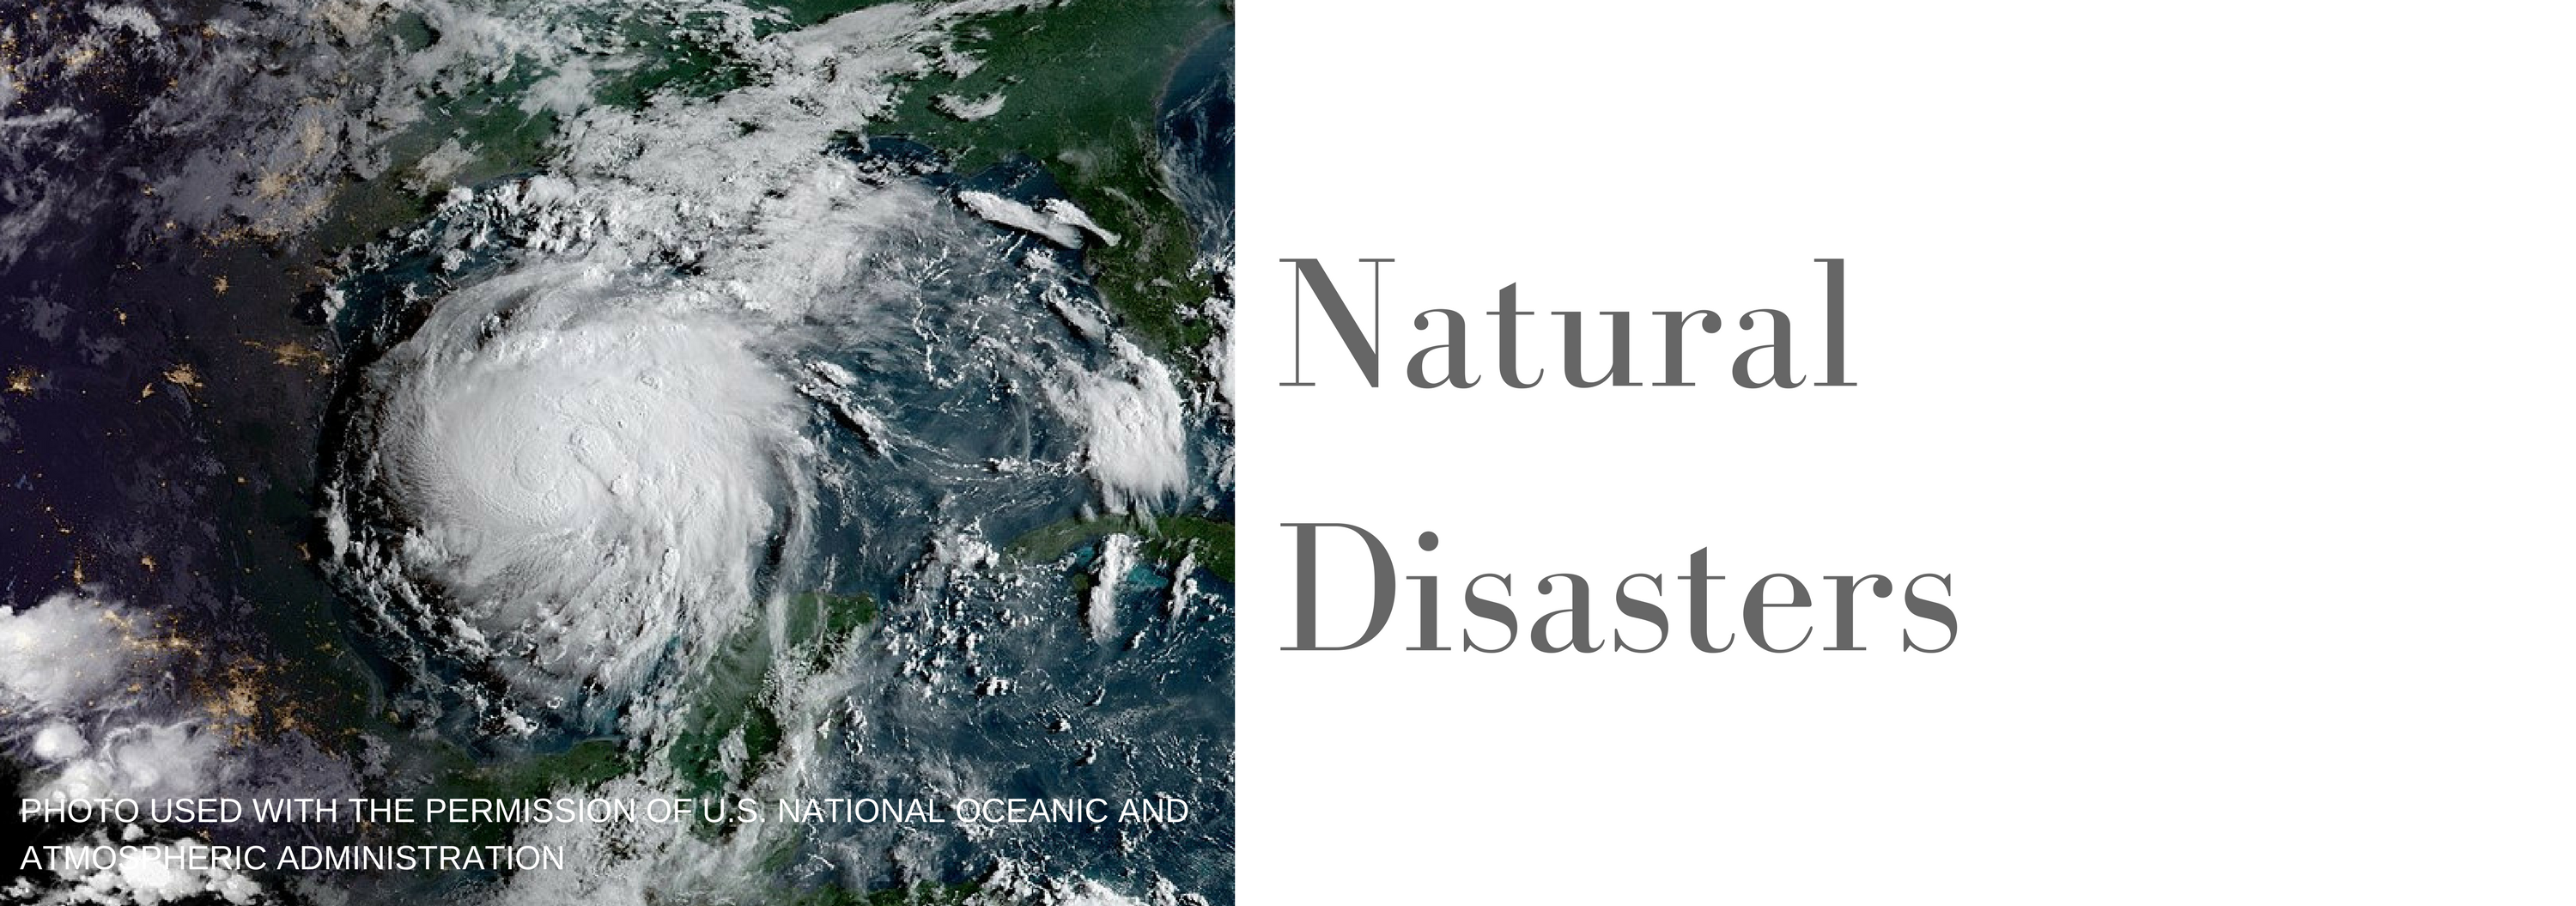 nat disasters